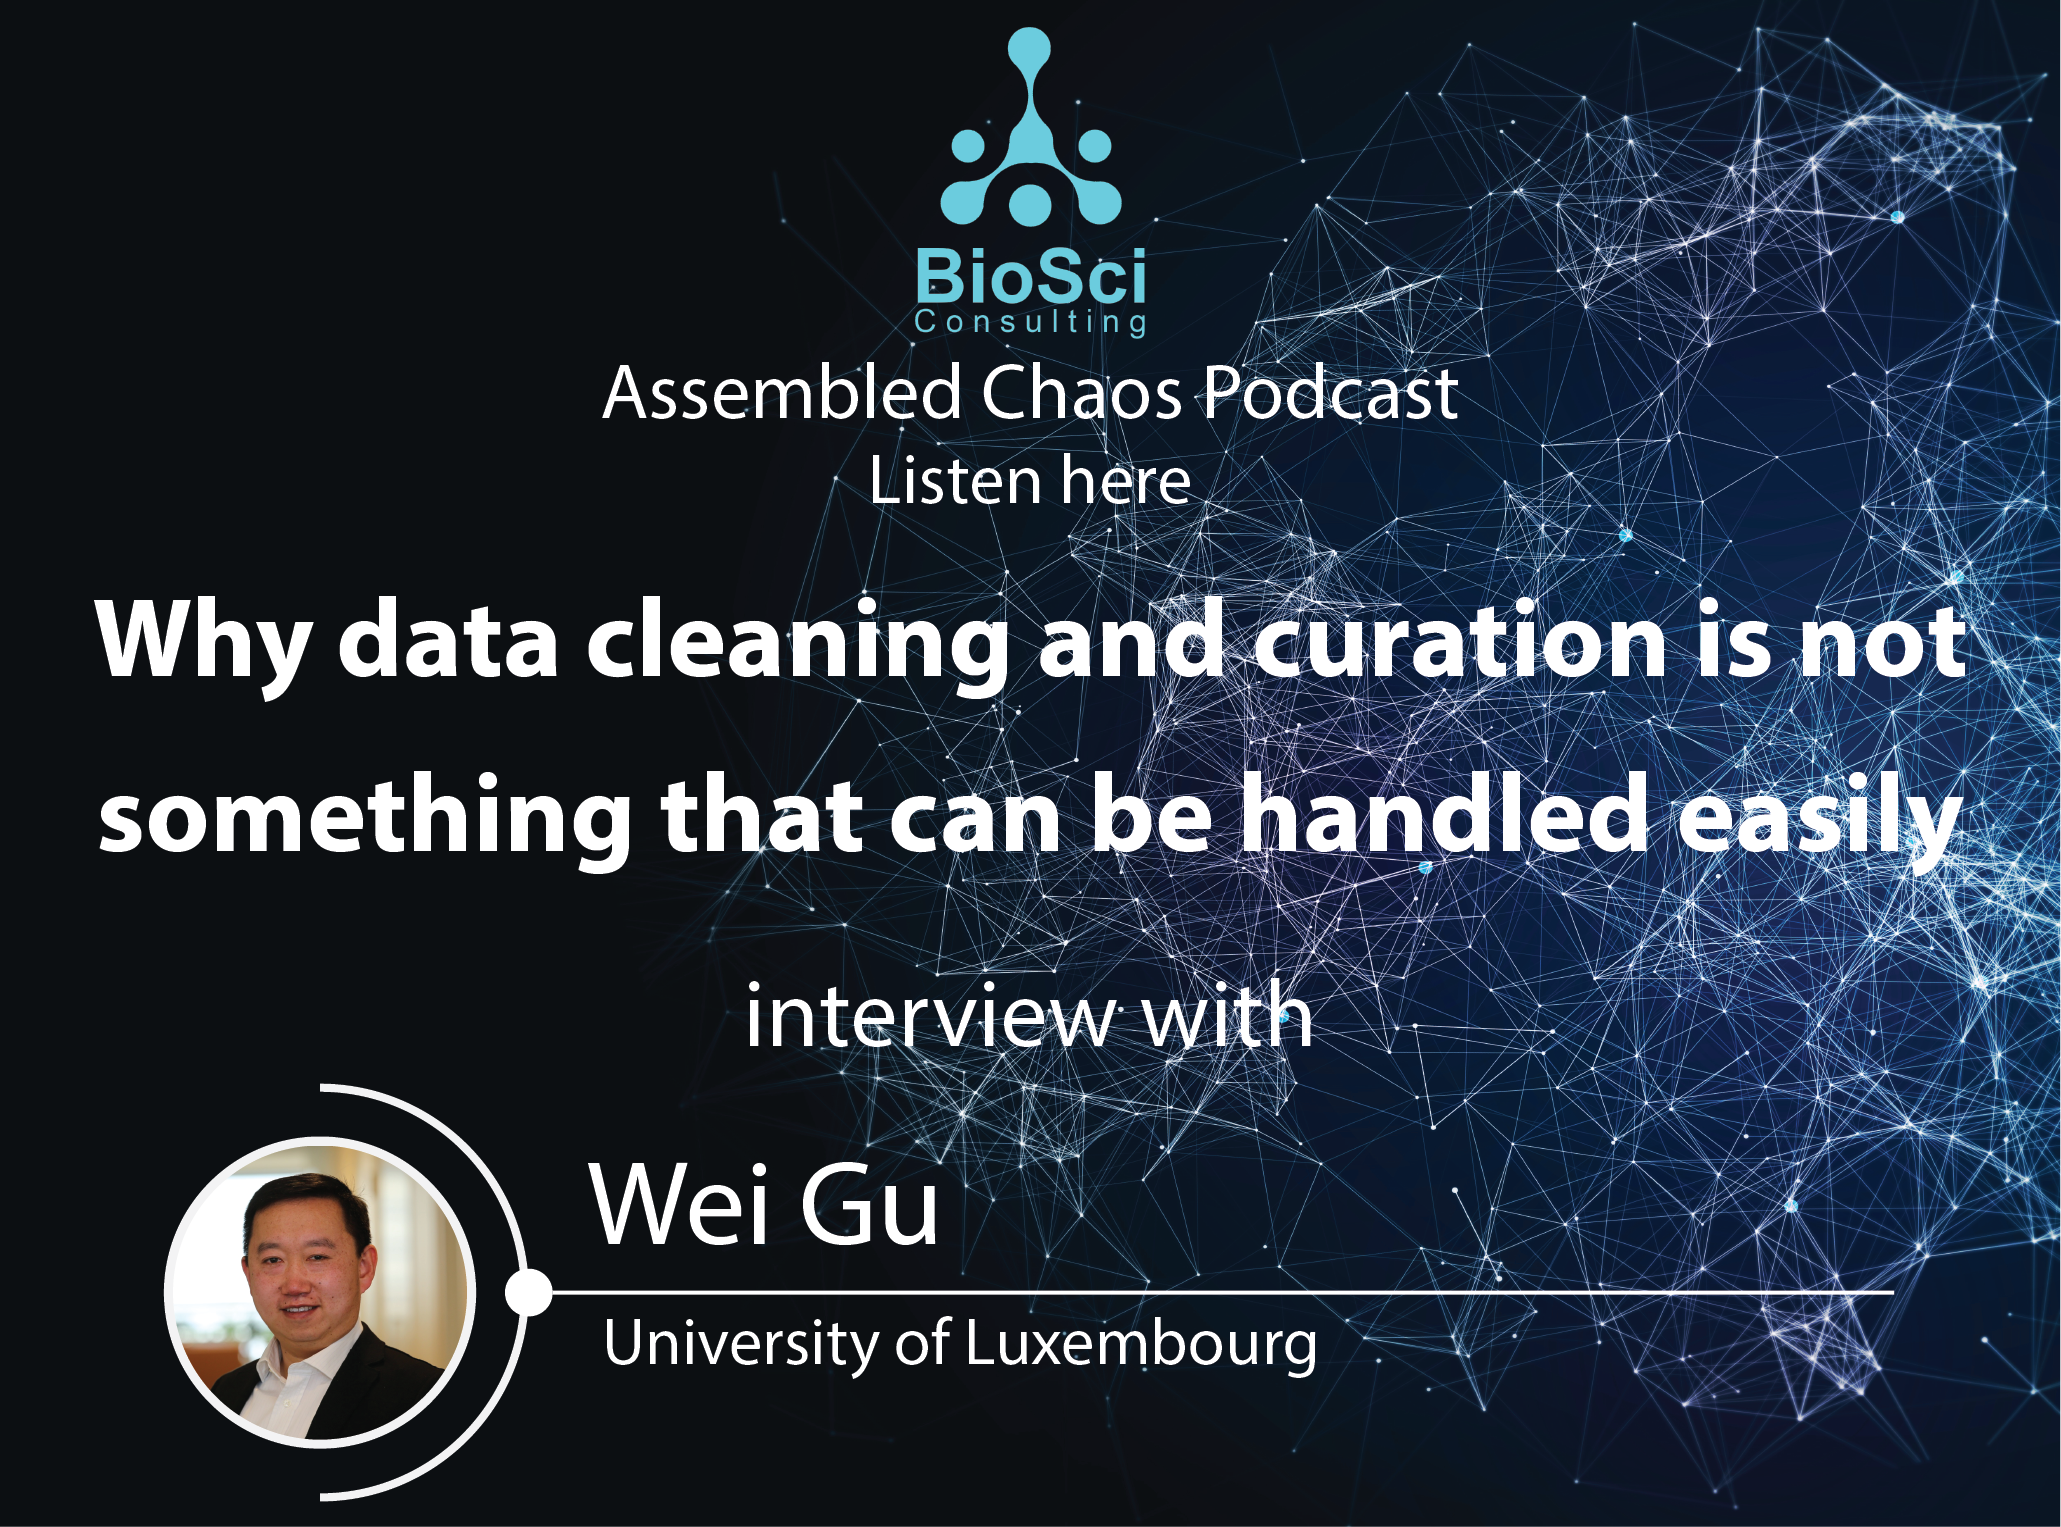 Why data cleaning and curation is not something that can be handled easily